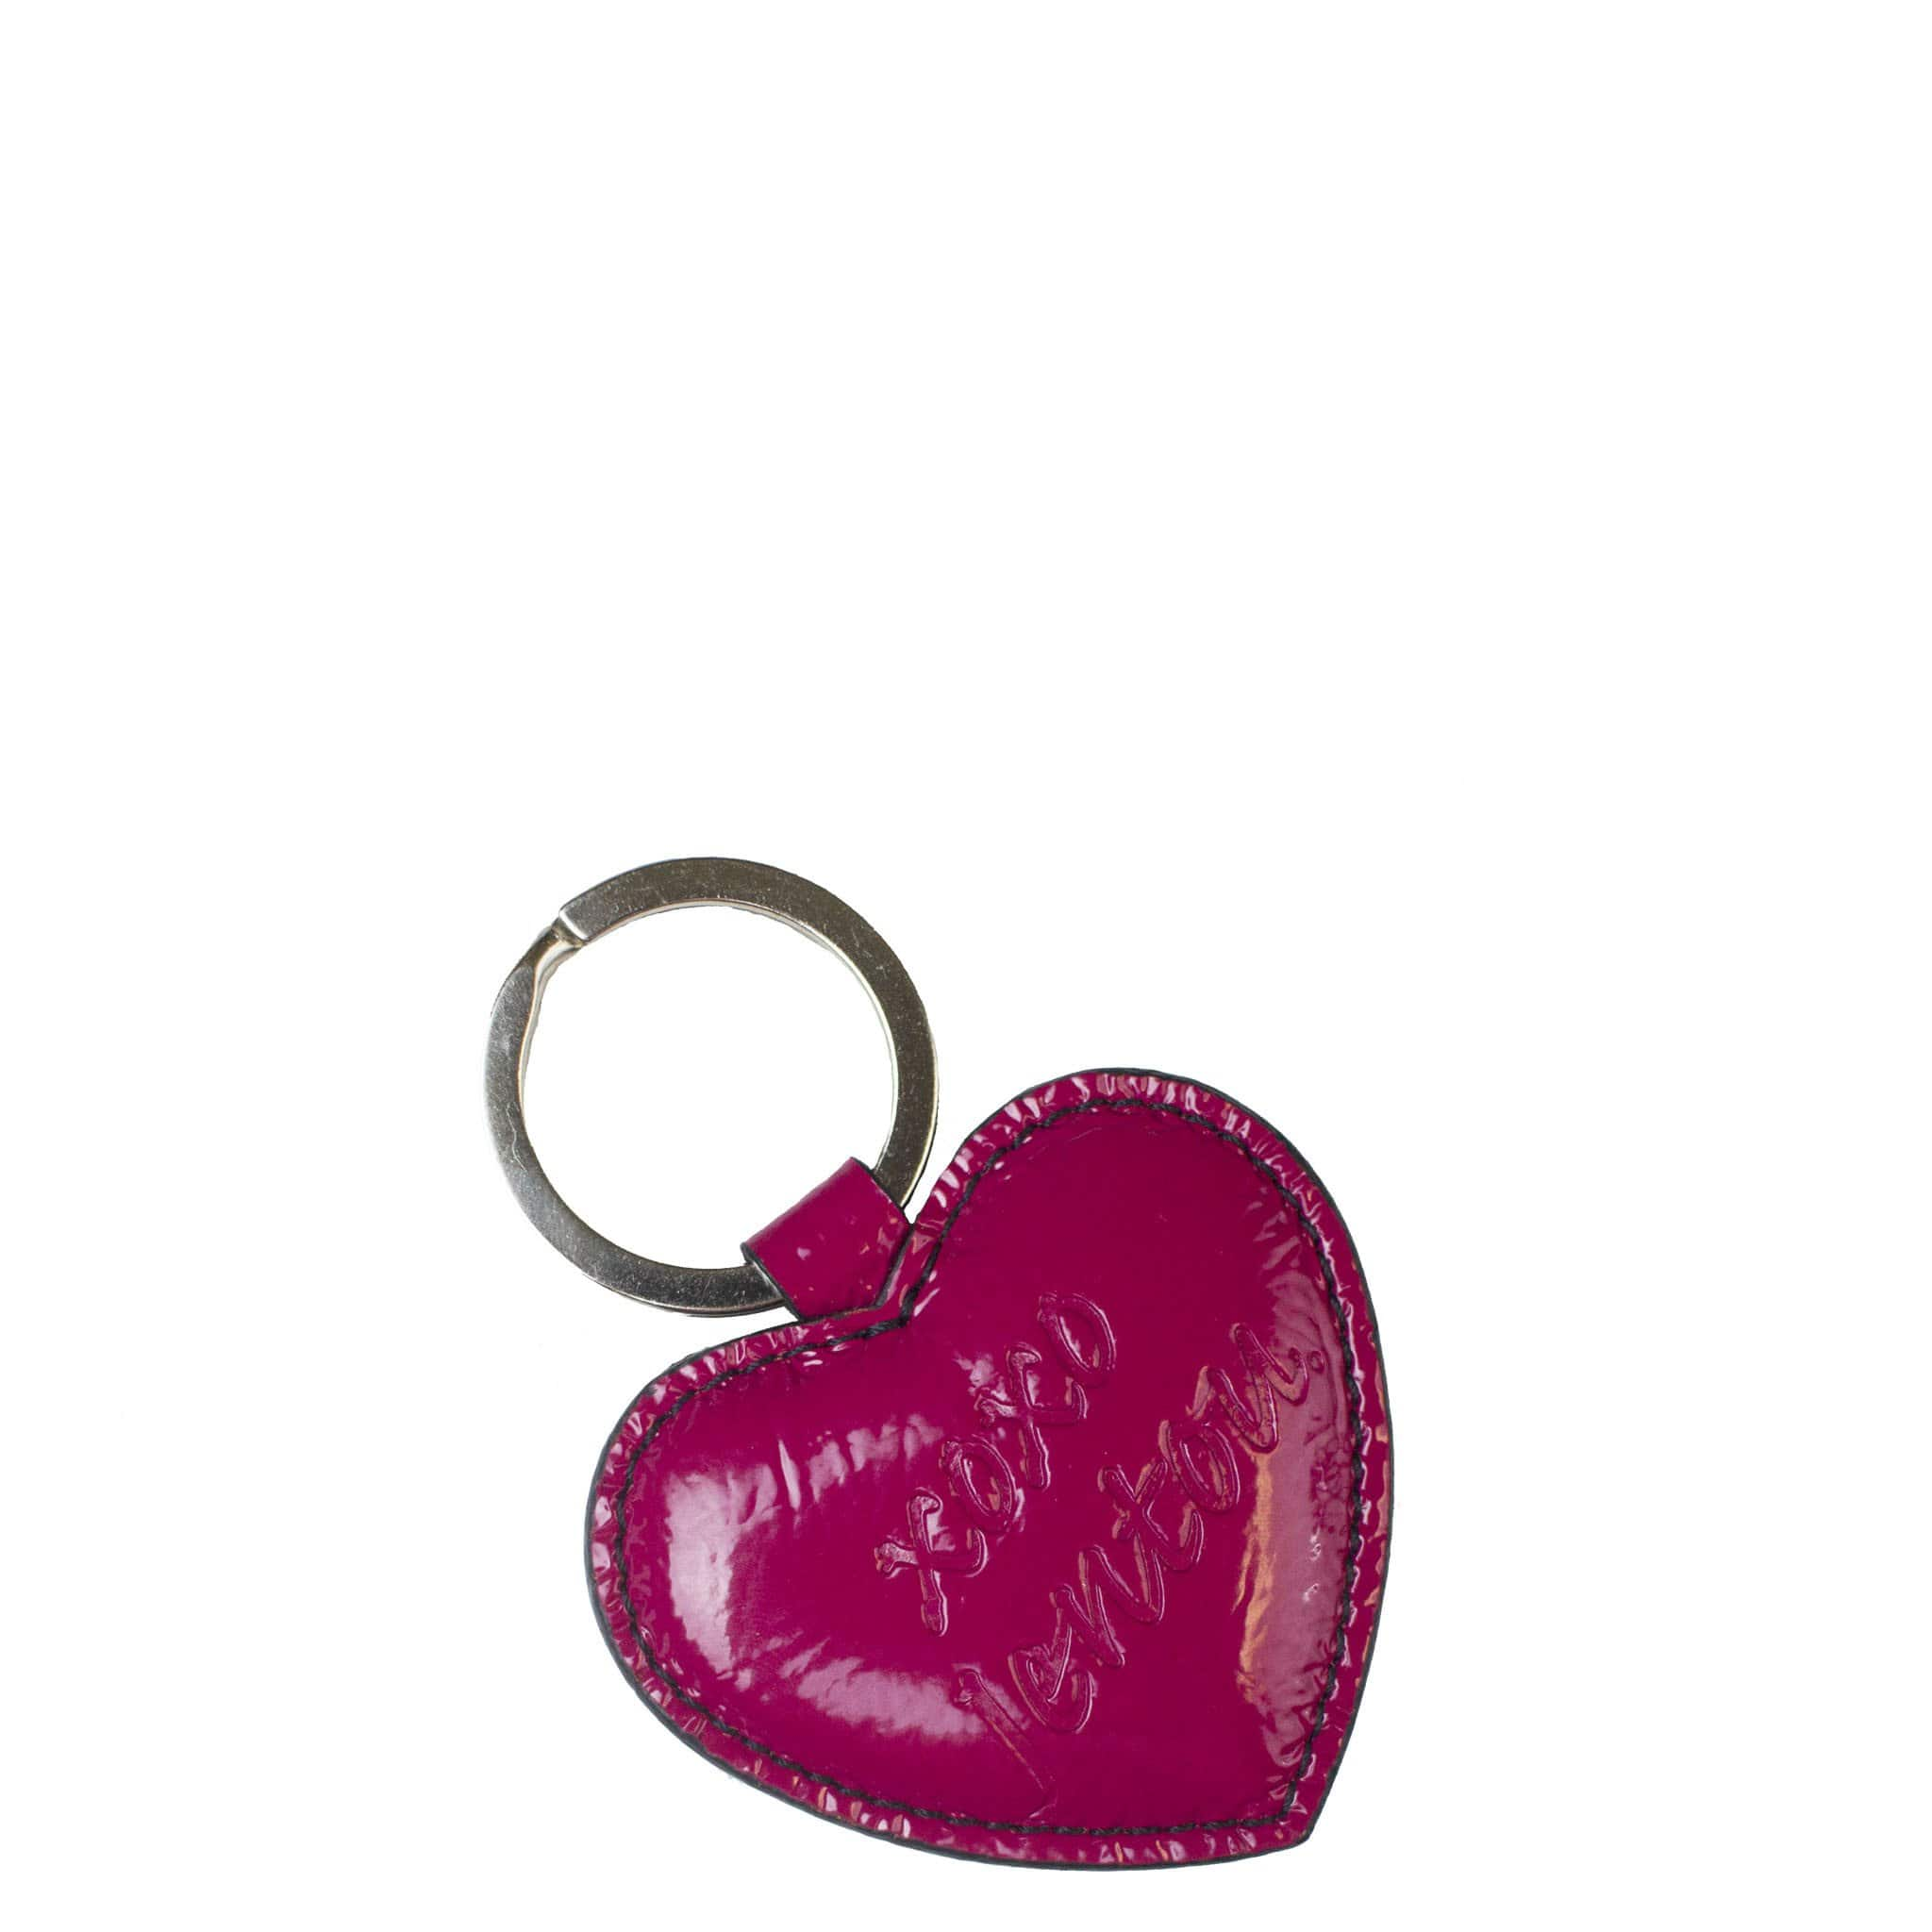 pink fuchsia heart key fob chain ring